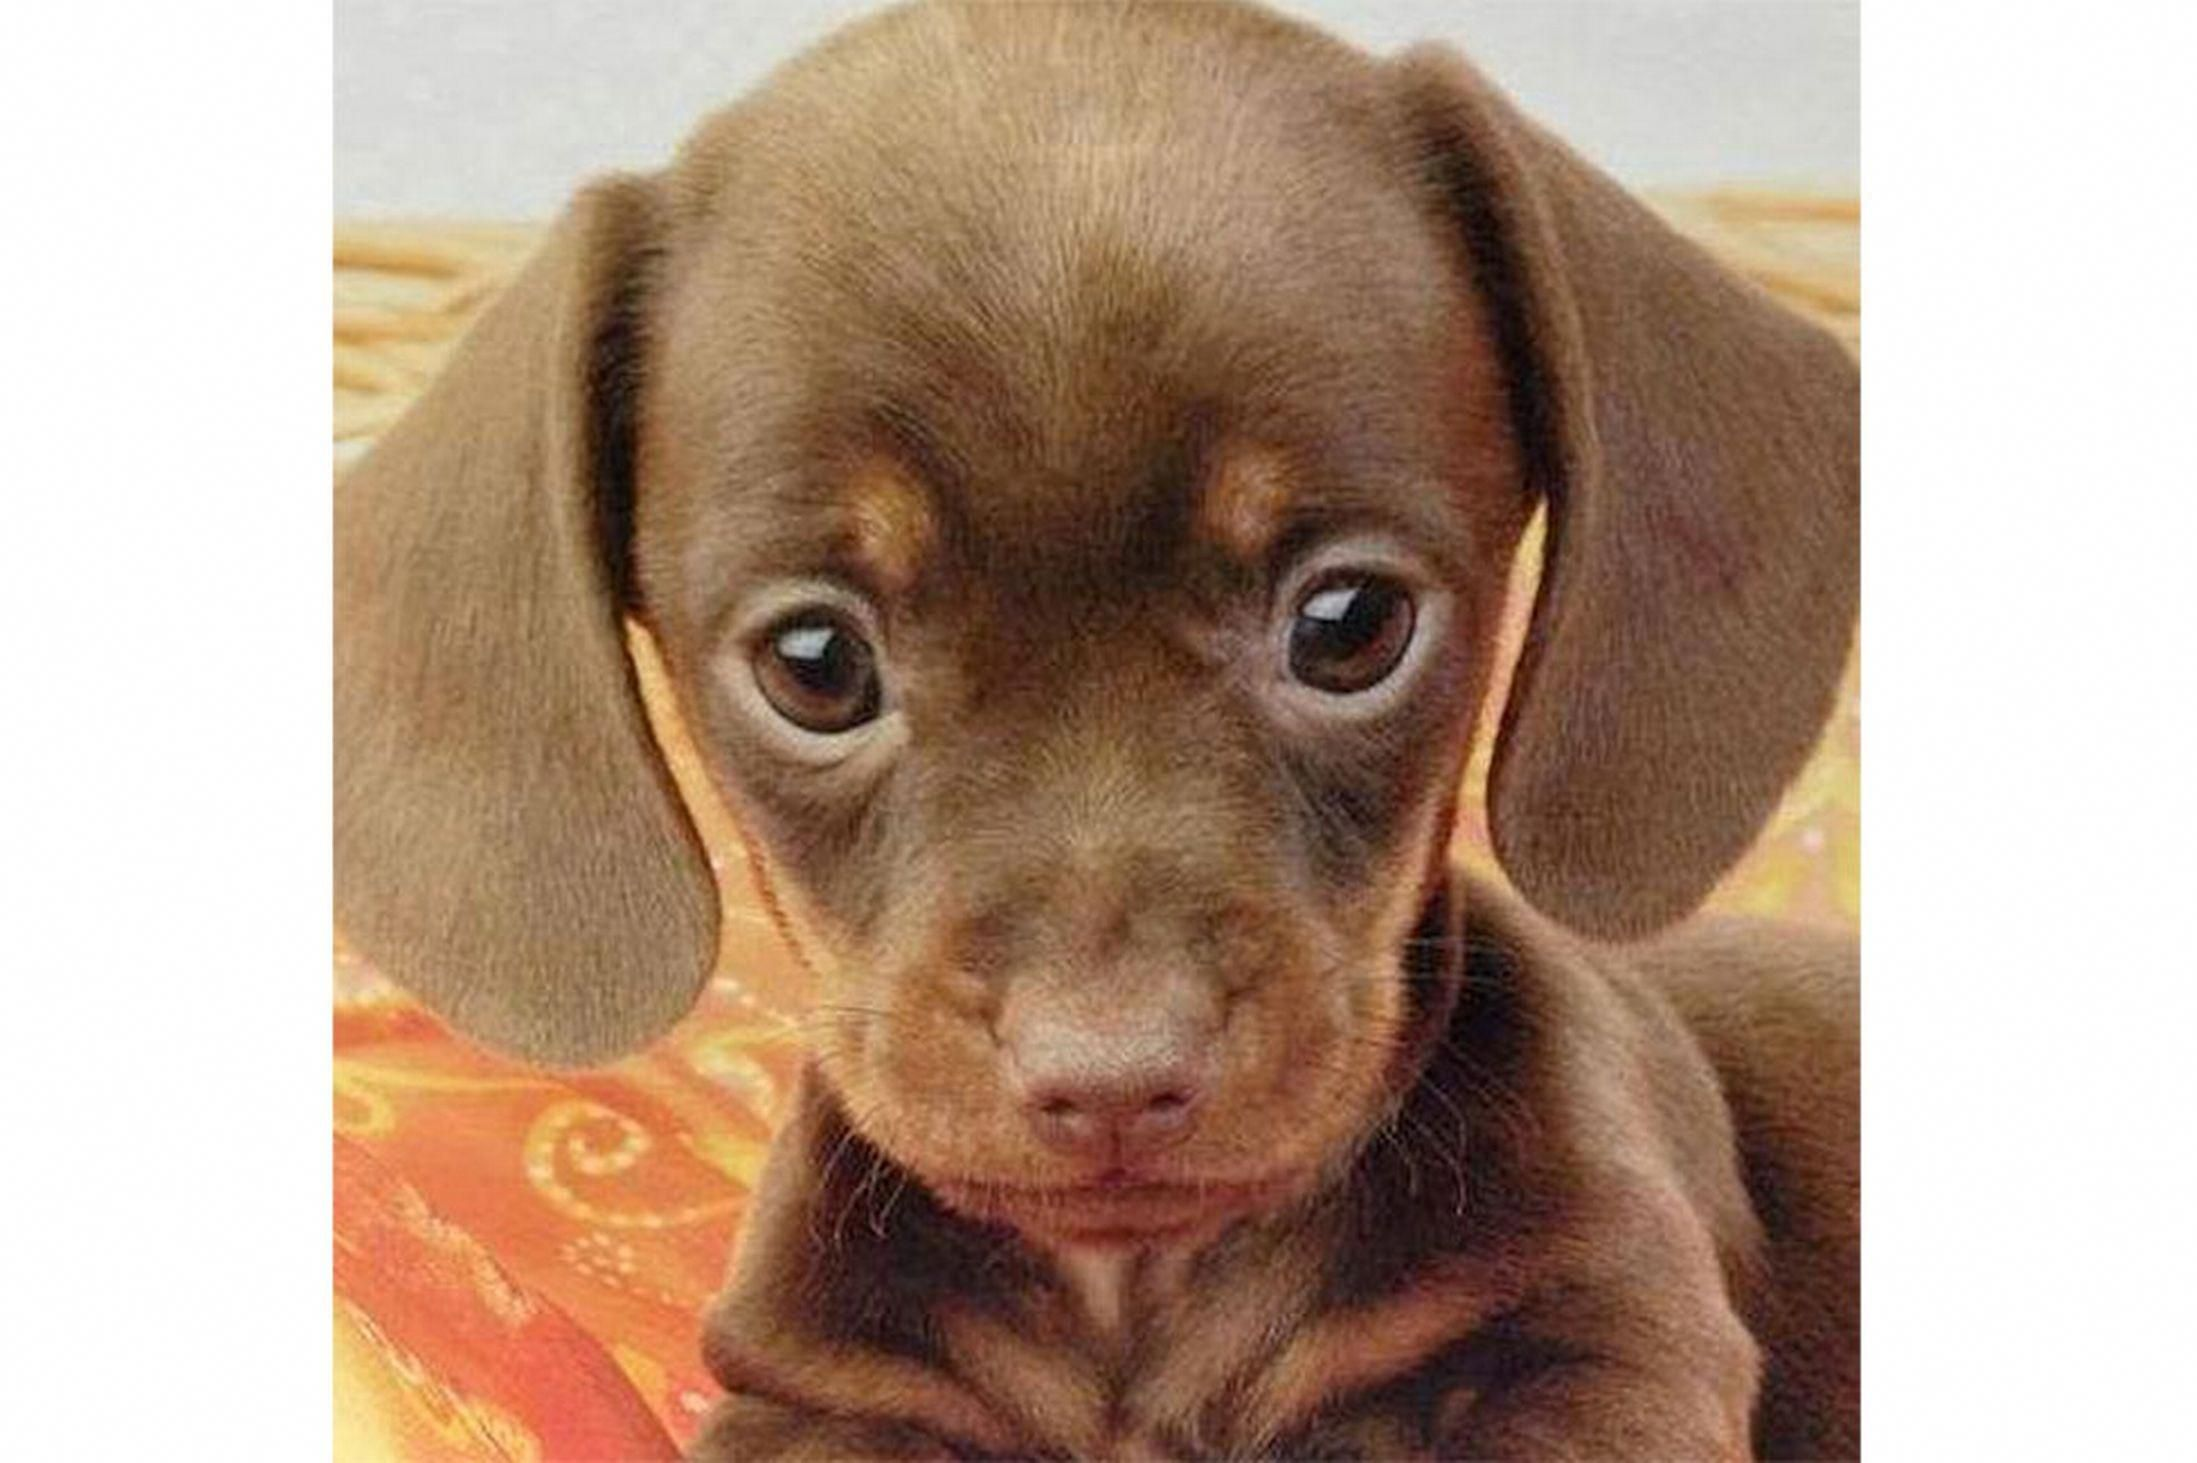 Is This Adorable Dog With A High Forehead The Cutest Puppy Ever